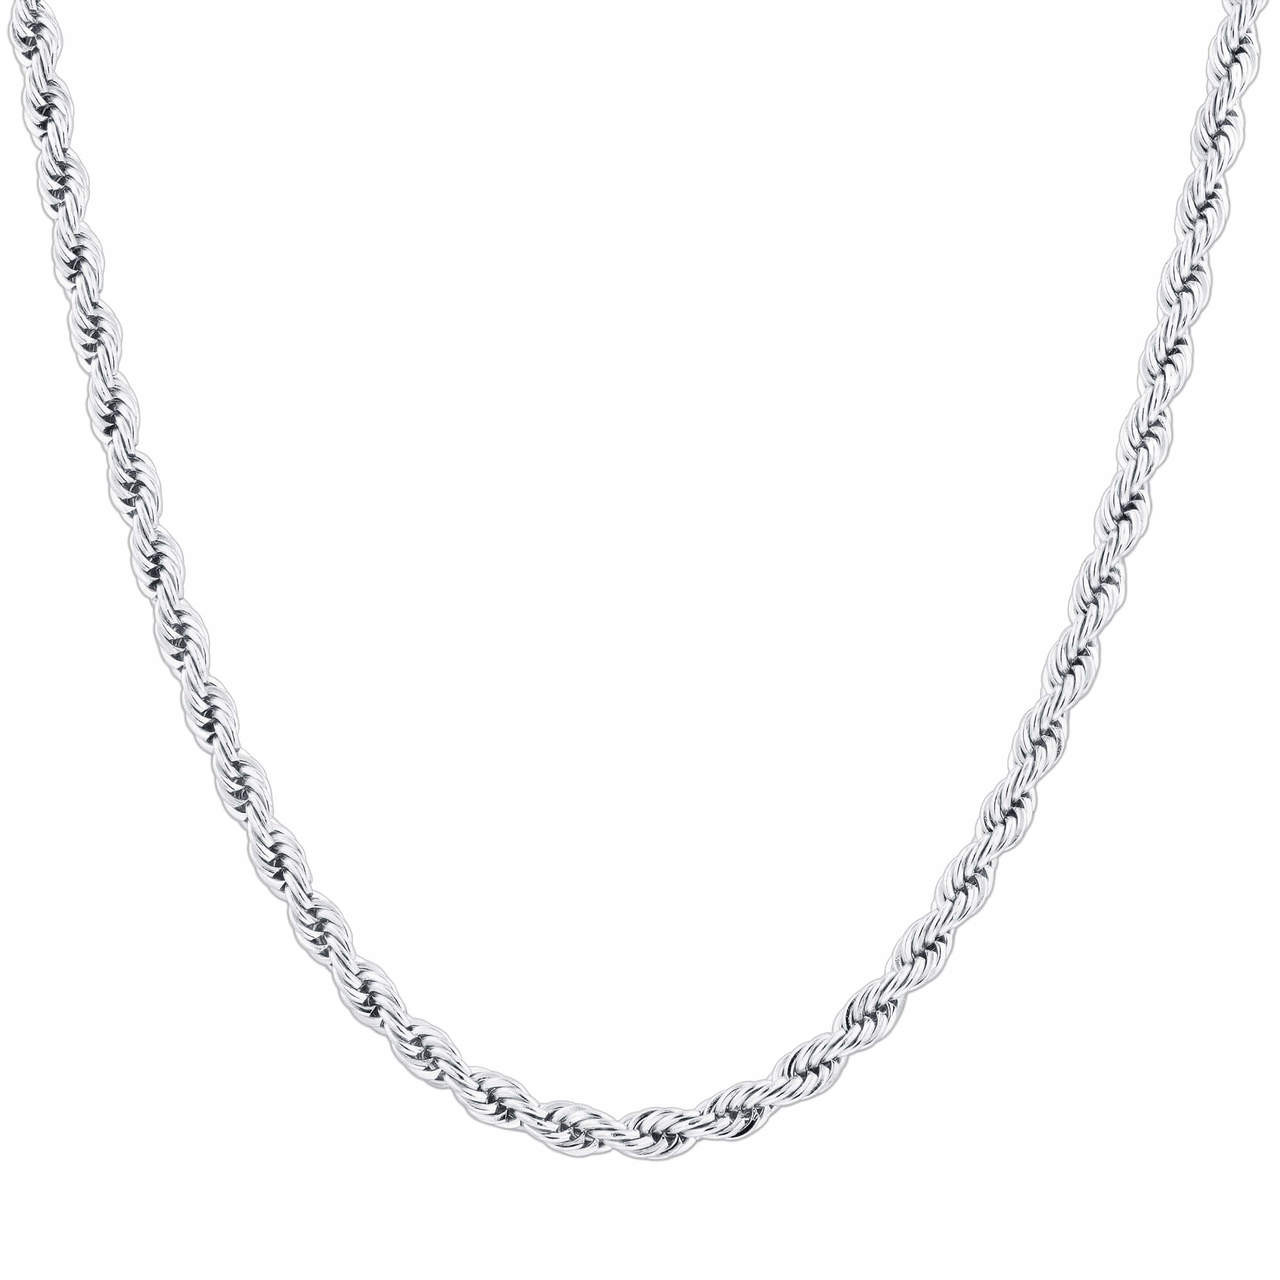 Men's Rope Chain Necklace